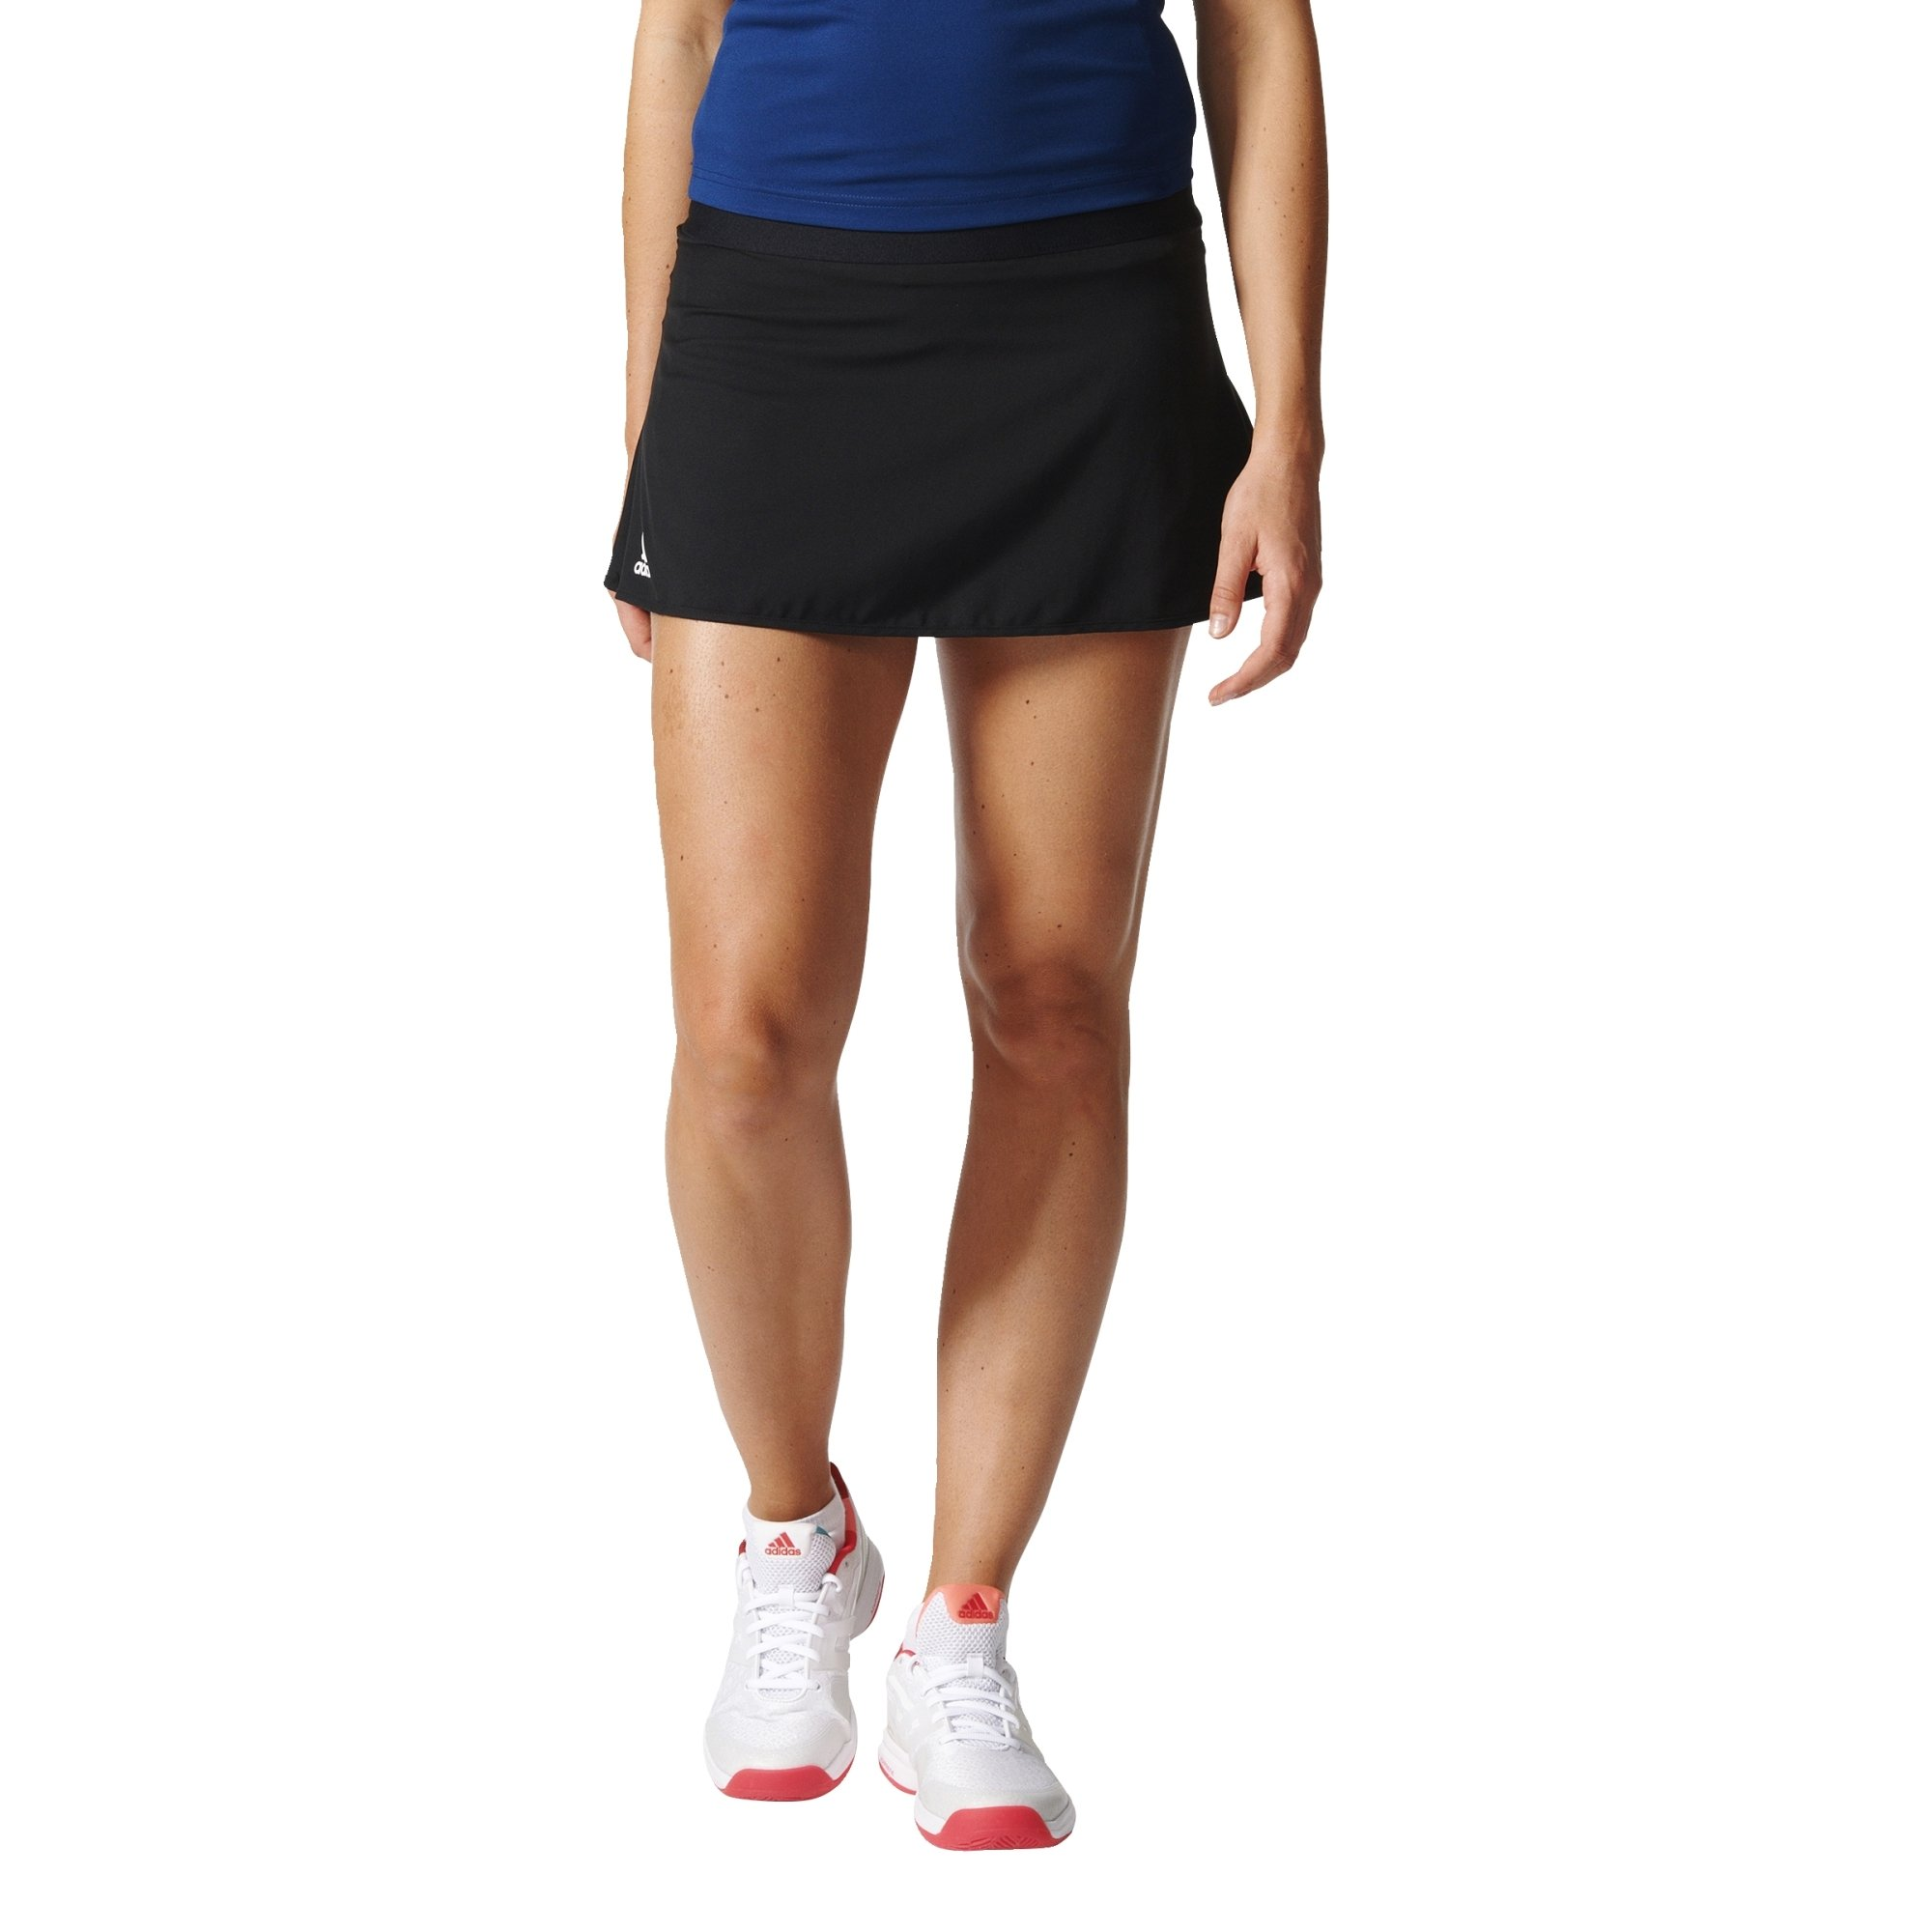 adidas Women's Tennis Club Skirt, Black, Small